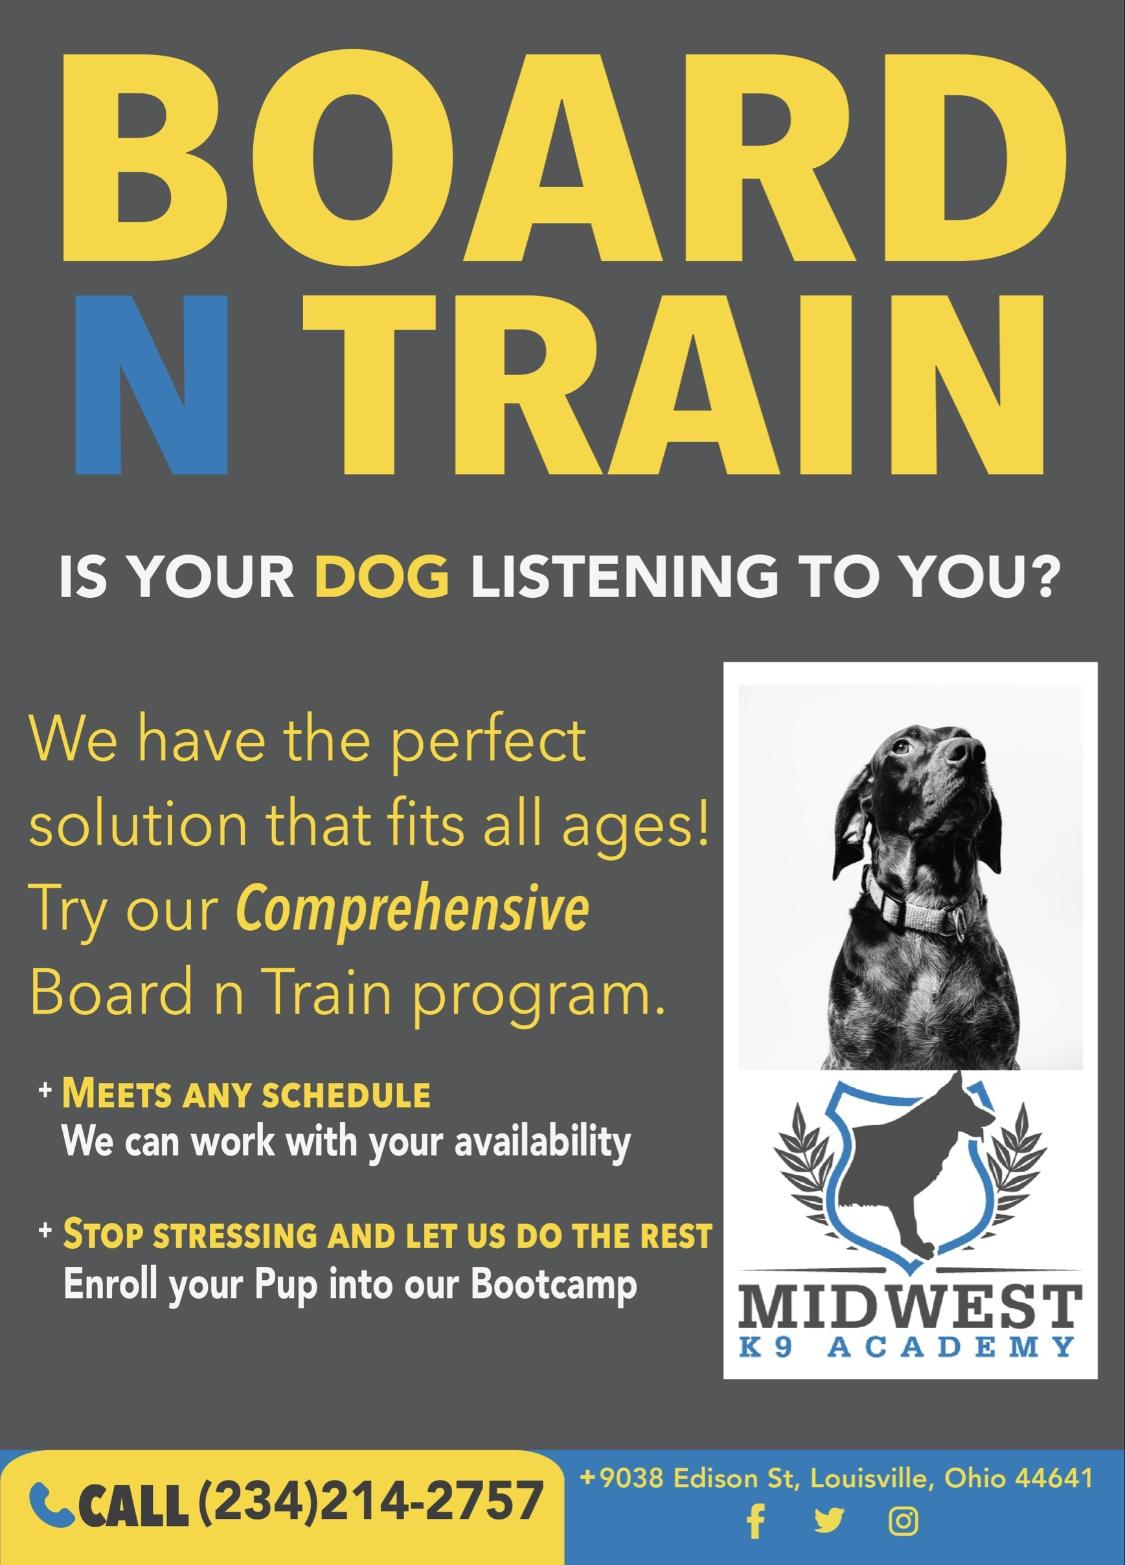 board and train advertisement for Midwest K9 Academy